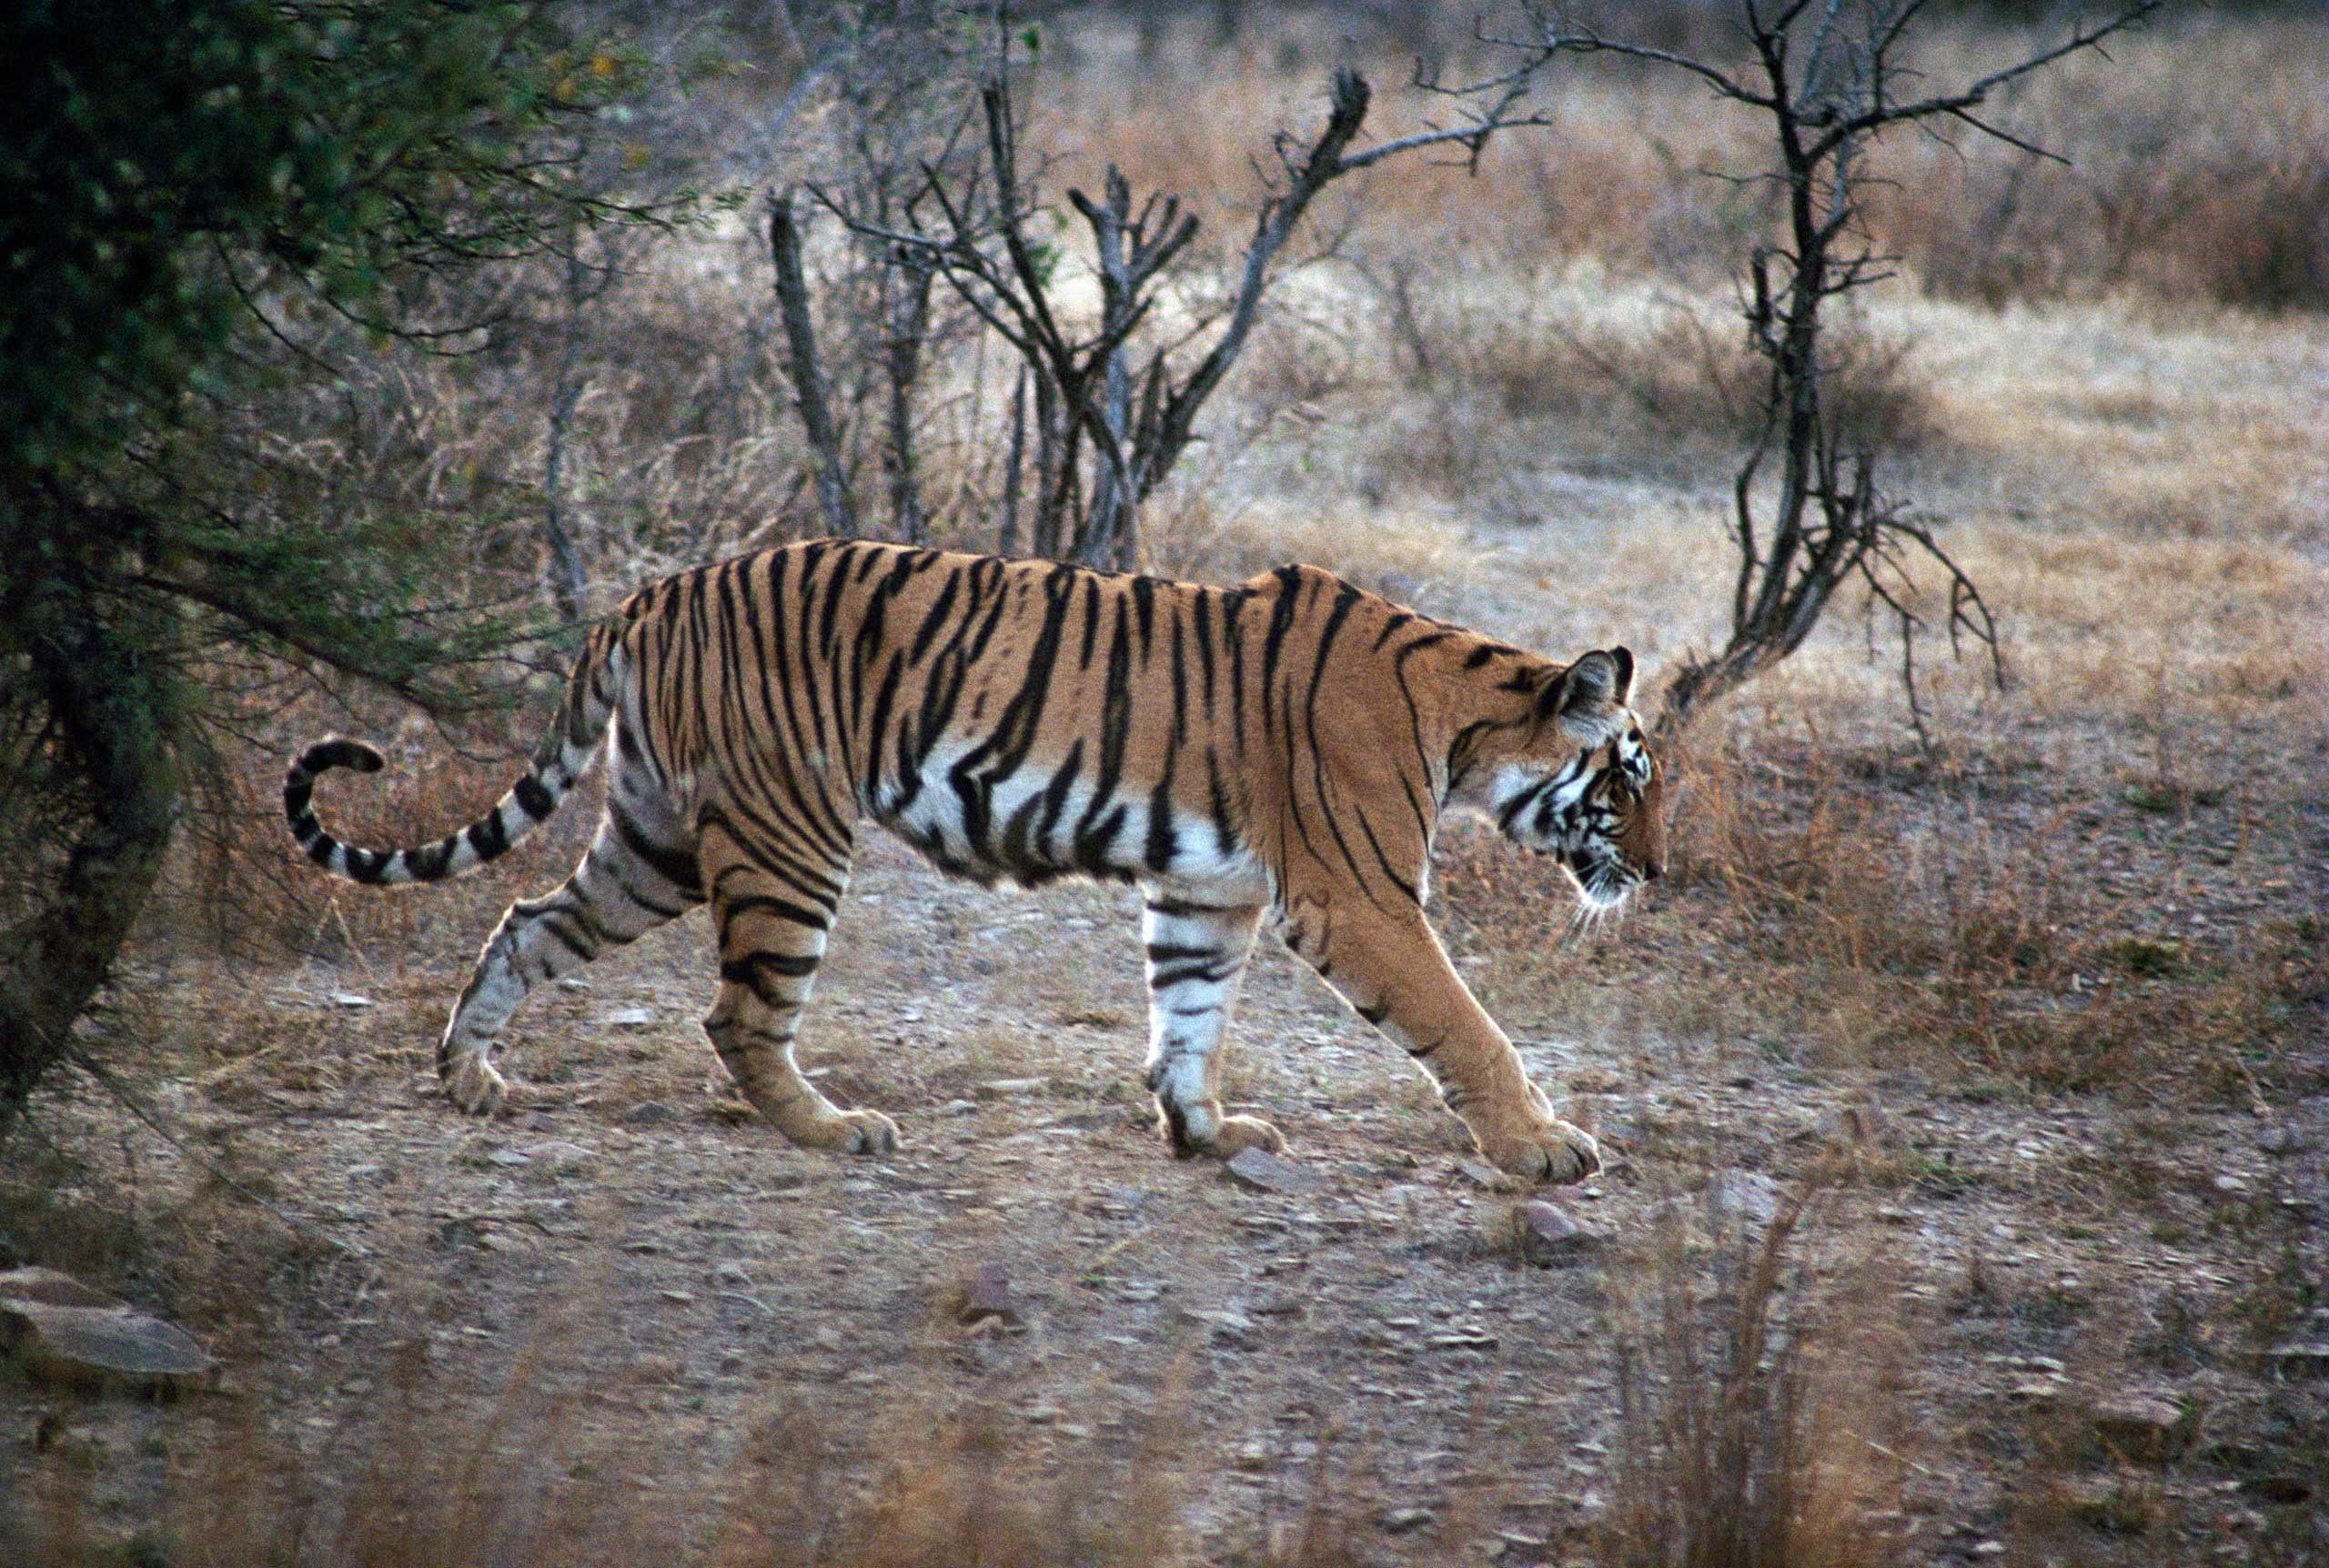 A Bengal tiger at Ranthambore National Park, India, on March 3, 2014